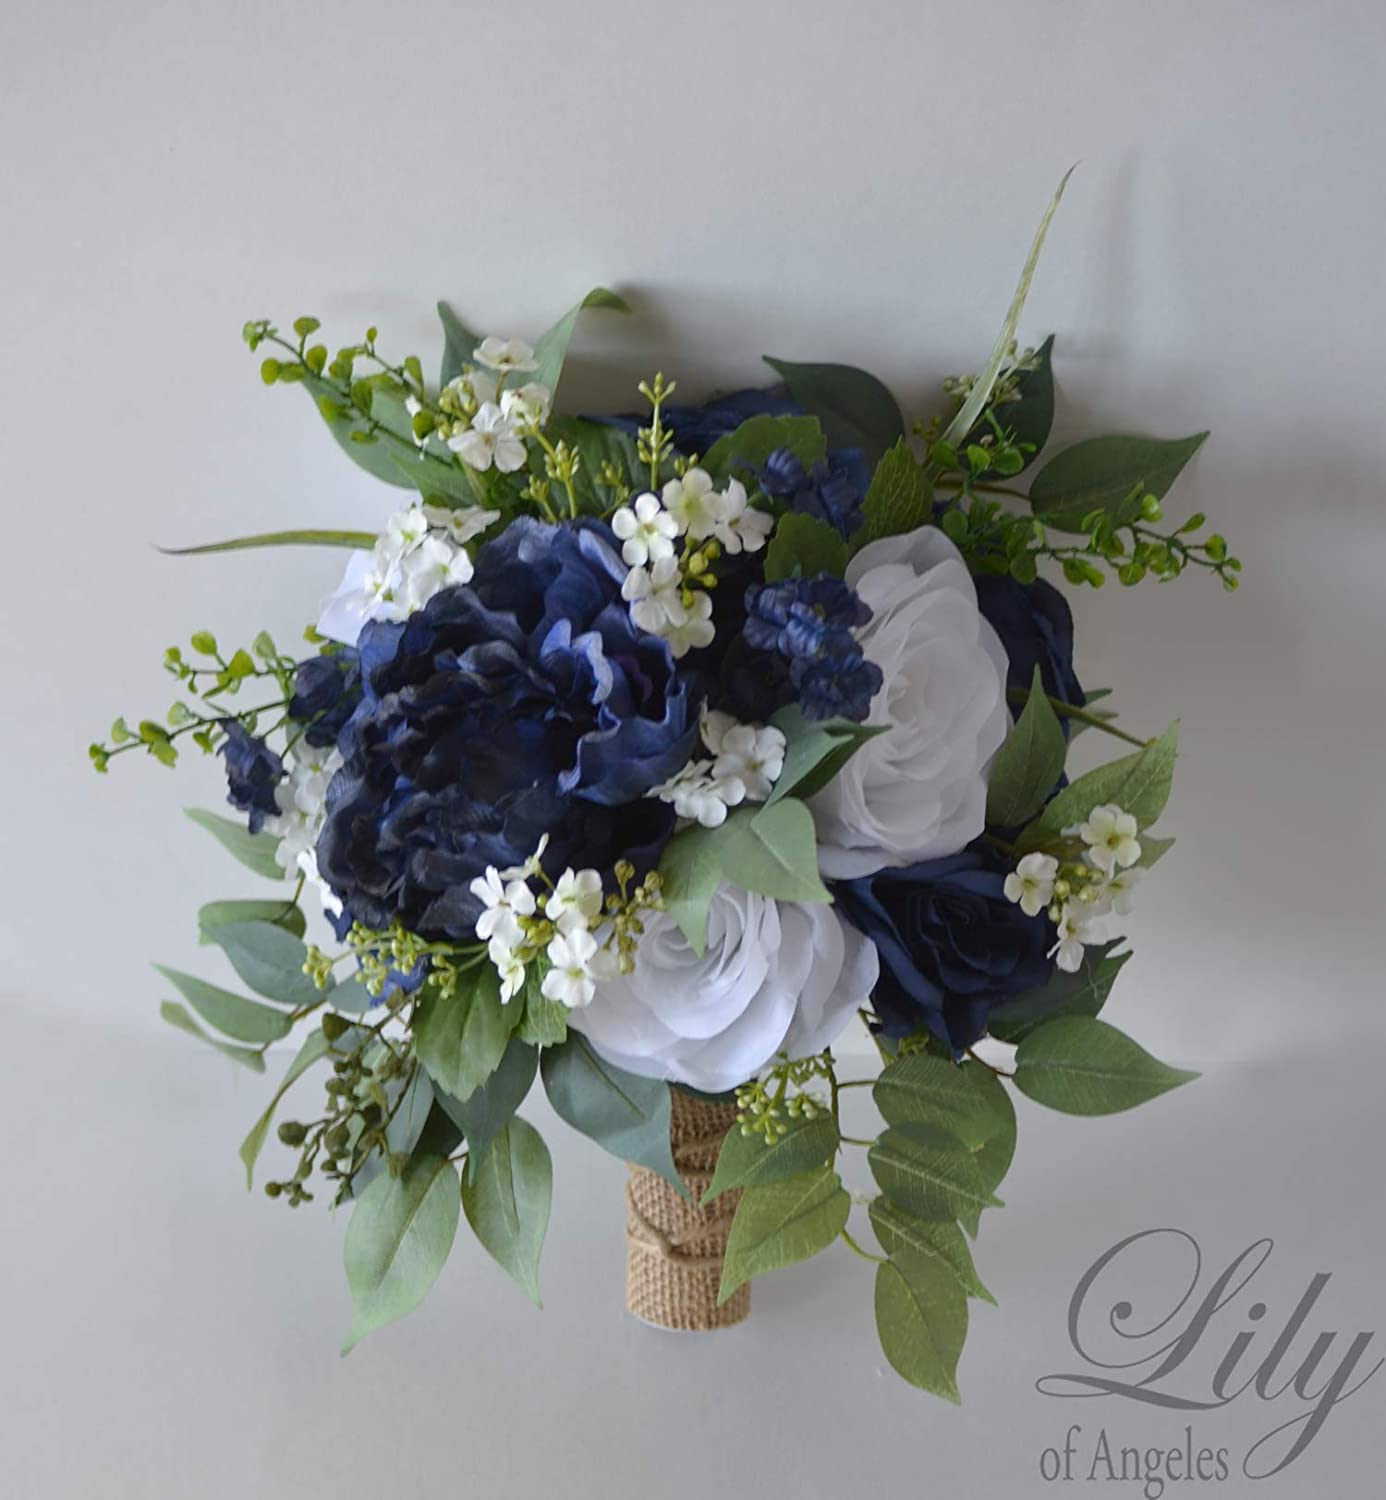 Amazon Com Wedding Bouquet Bridal Bouquet Bridesmaid Bouquet Silk Flower Bouquet Wedding Flower Navy Navy Blue Blue Dark Blue White Off White Greenery Rustic Burlap Twine Lily Of Angeles Handmade